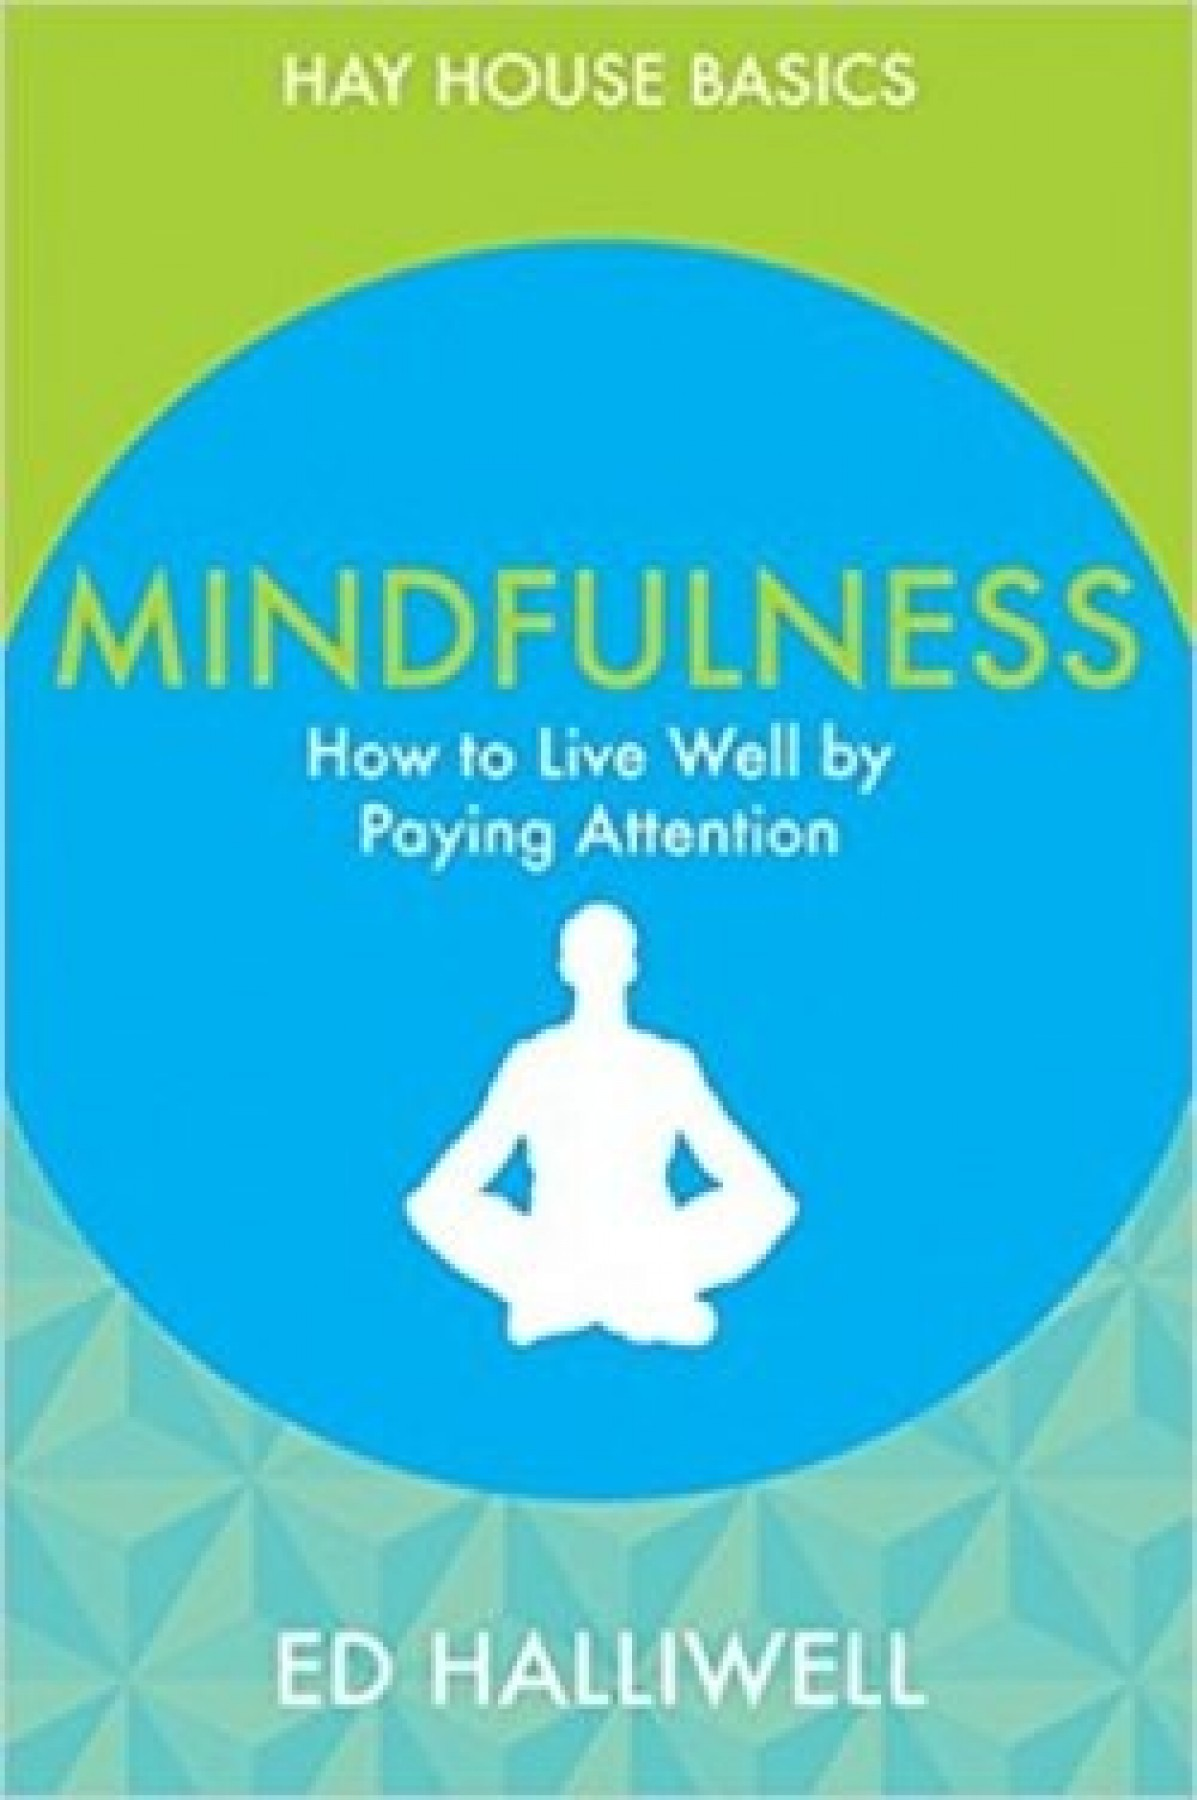 Mindfulness: How to live well by paying attention